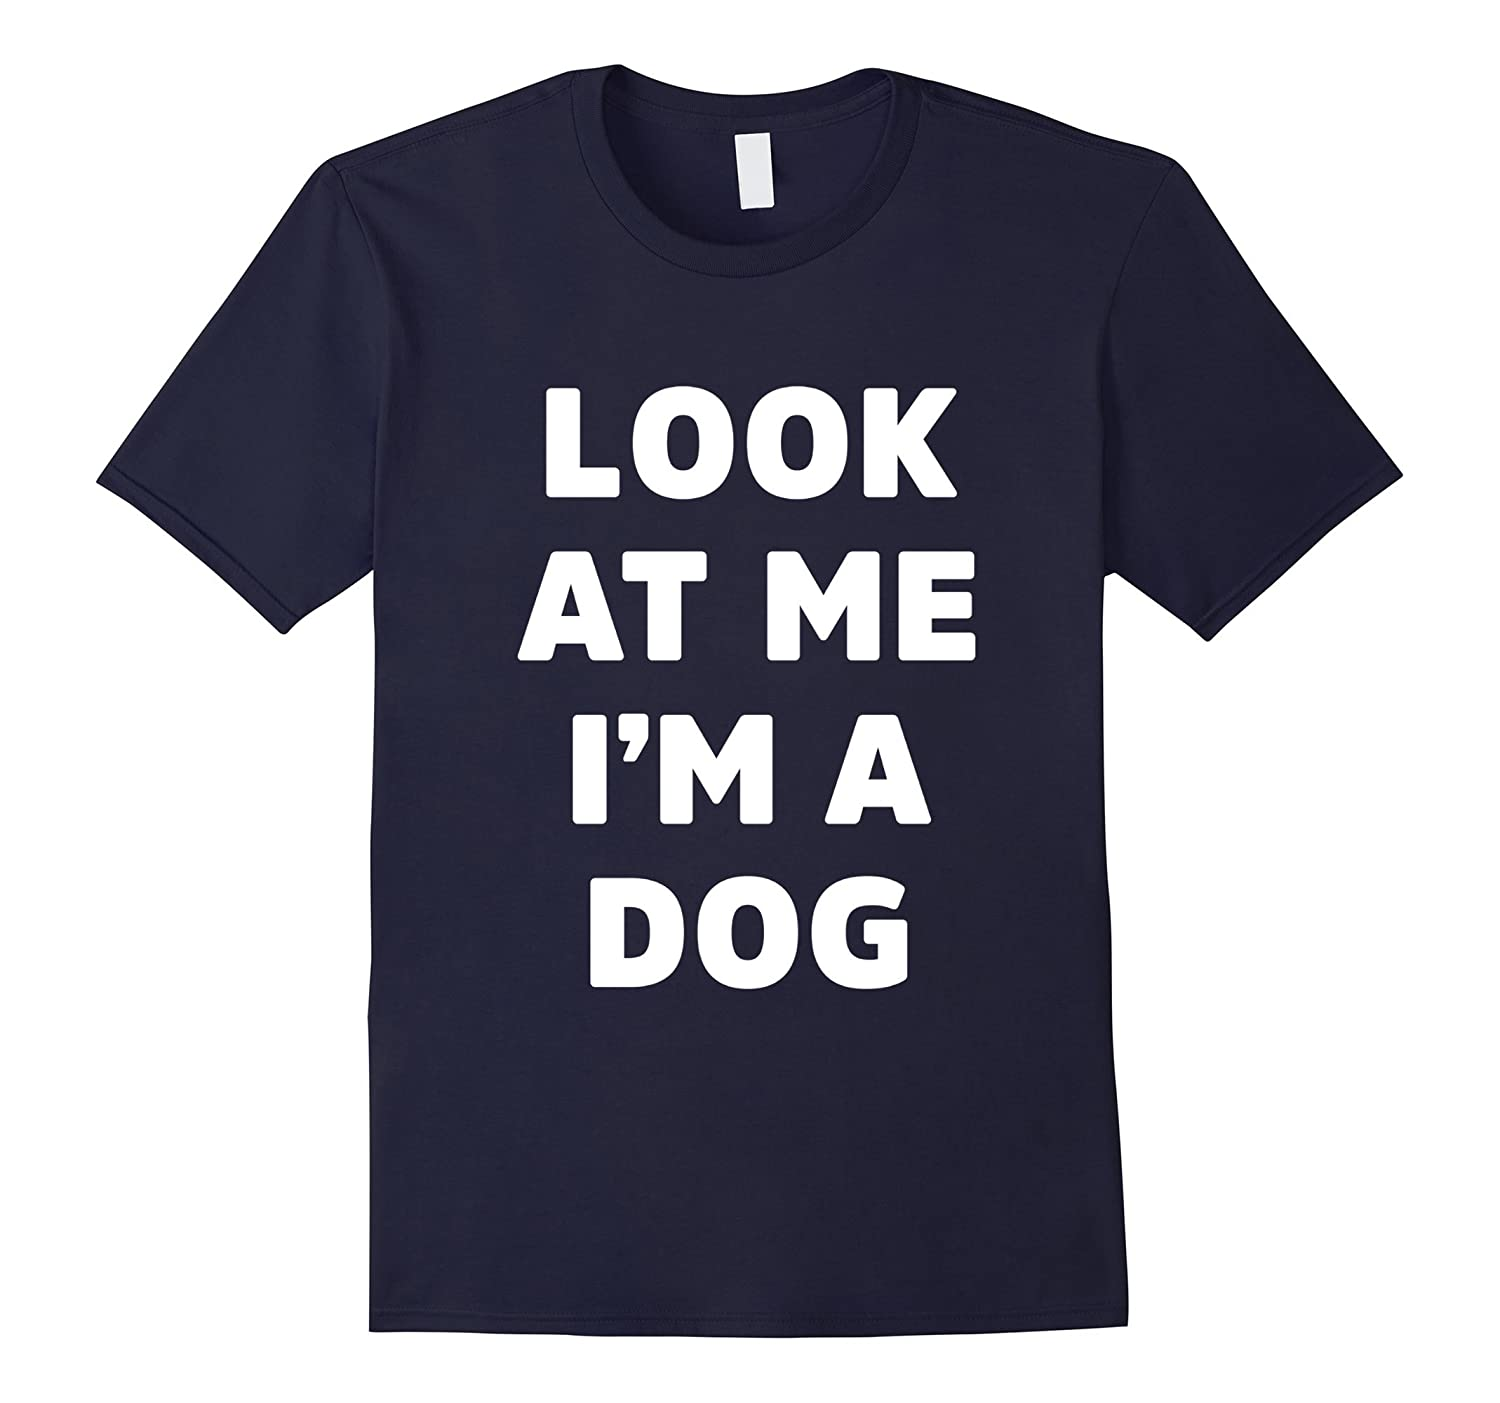 Dog Costume Shirt for Halloween Men Women Boys Girls